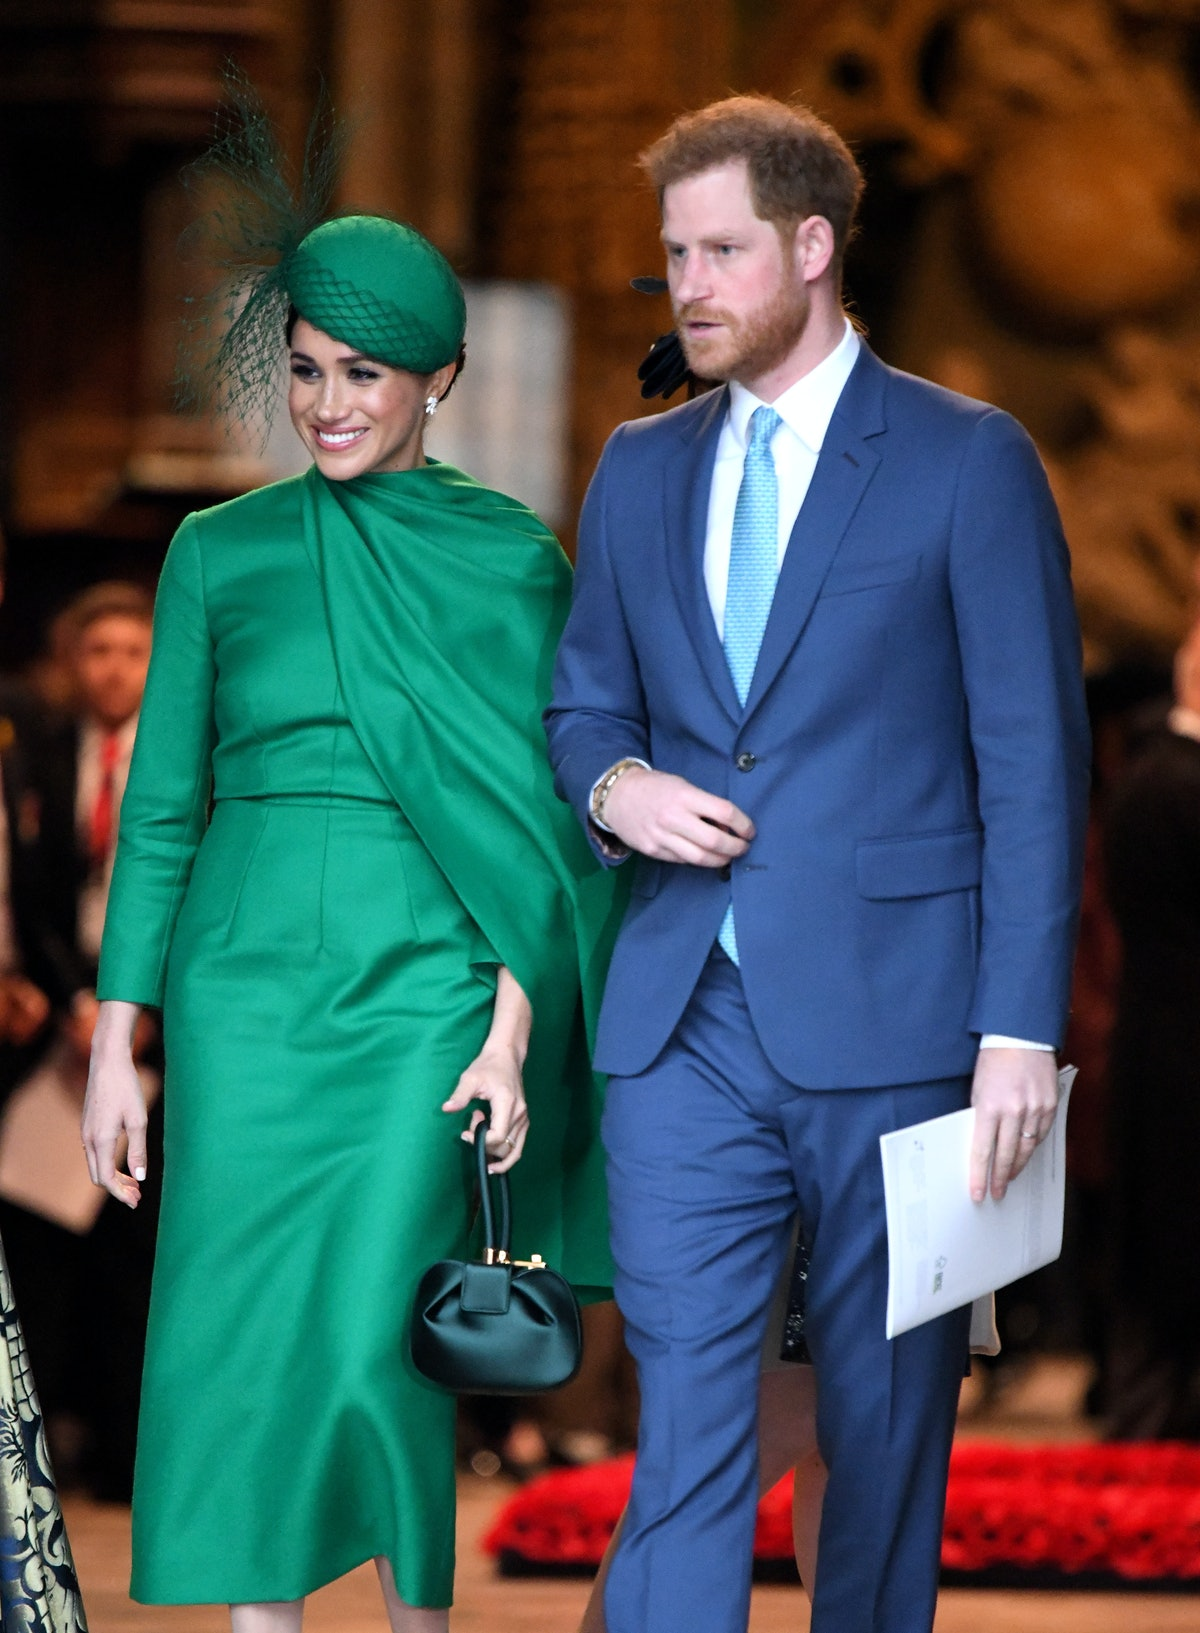 LONDON, ENGLAND - MARCH 09: Prince Harry, Duke of Sussex and Meghan, Duchess of Sussex depart after ...